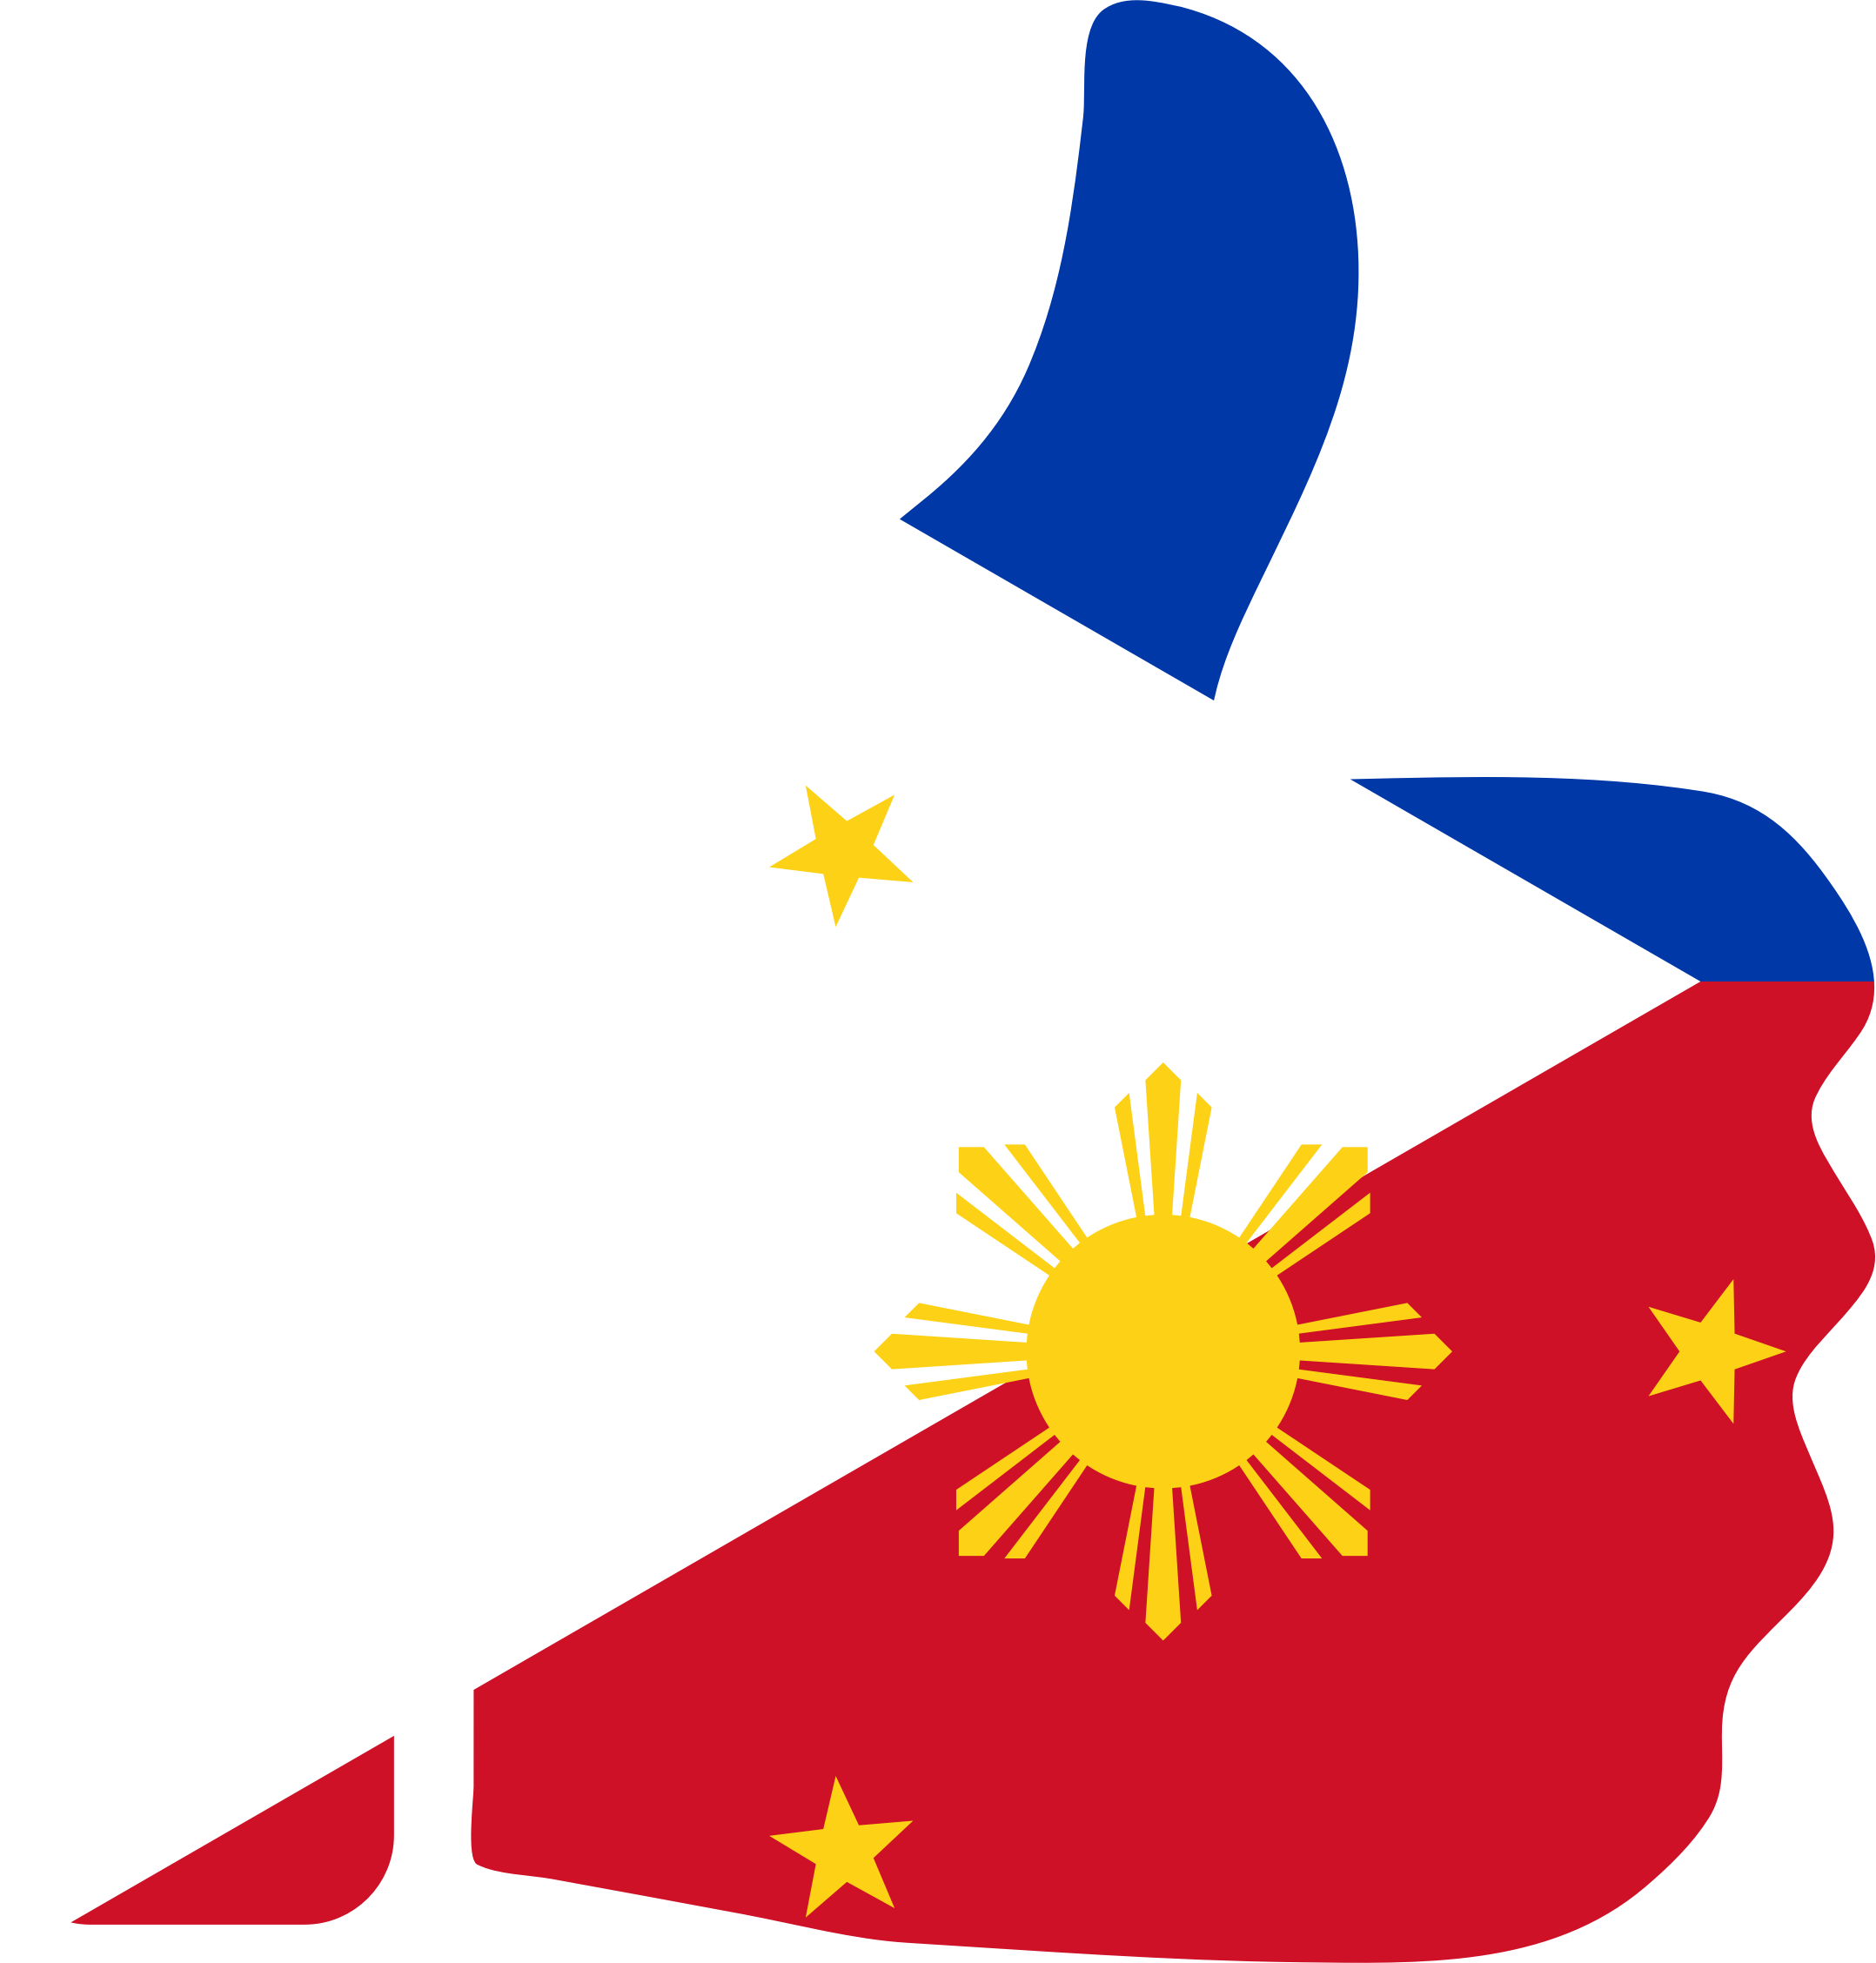 Thumbs Up Philippines by GDJ